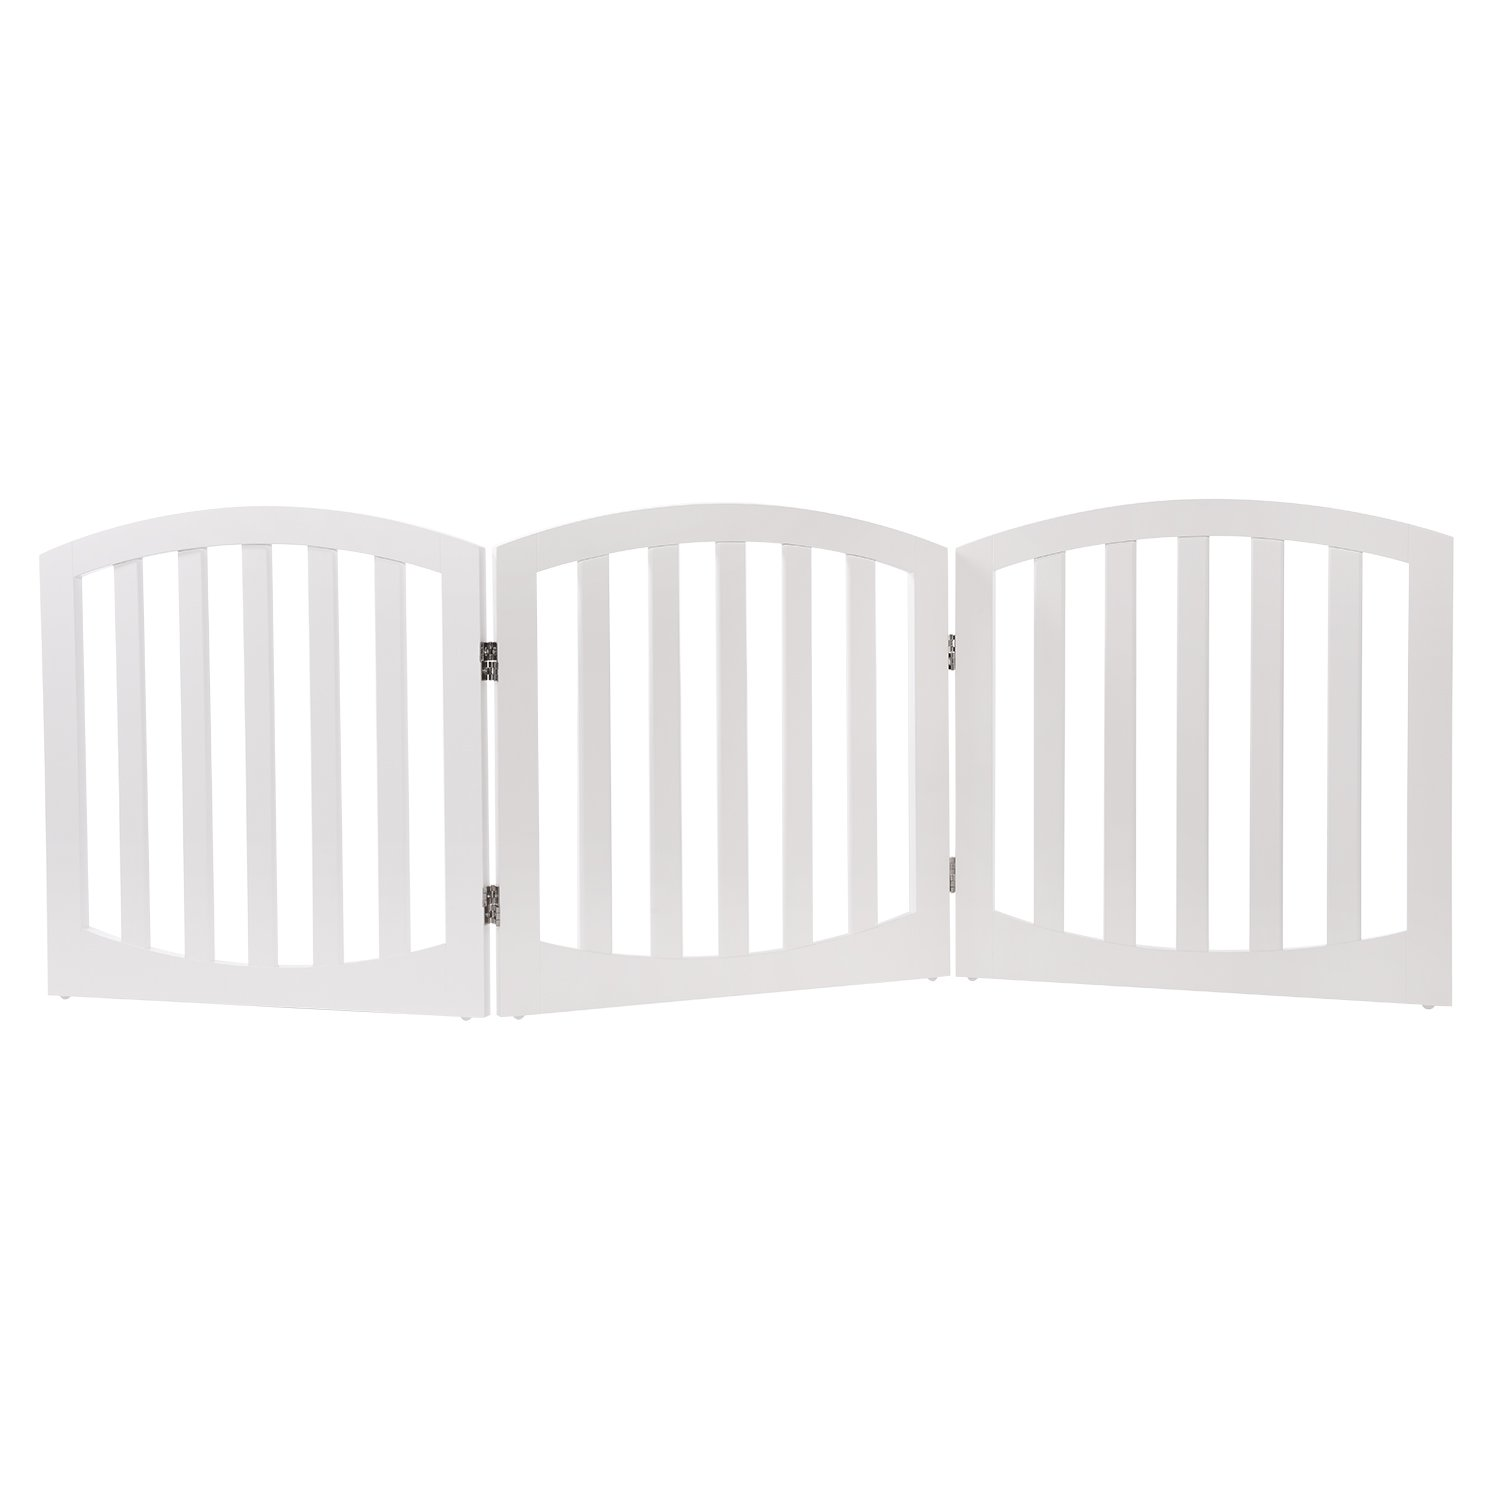 Arf Pets Free standing Wood Dog Gate, Step Over Pet Fence, Foldable, Adjustable - White